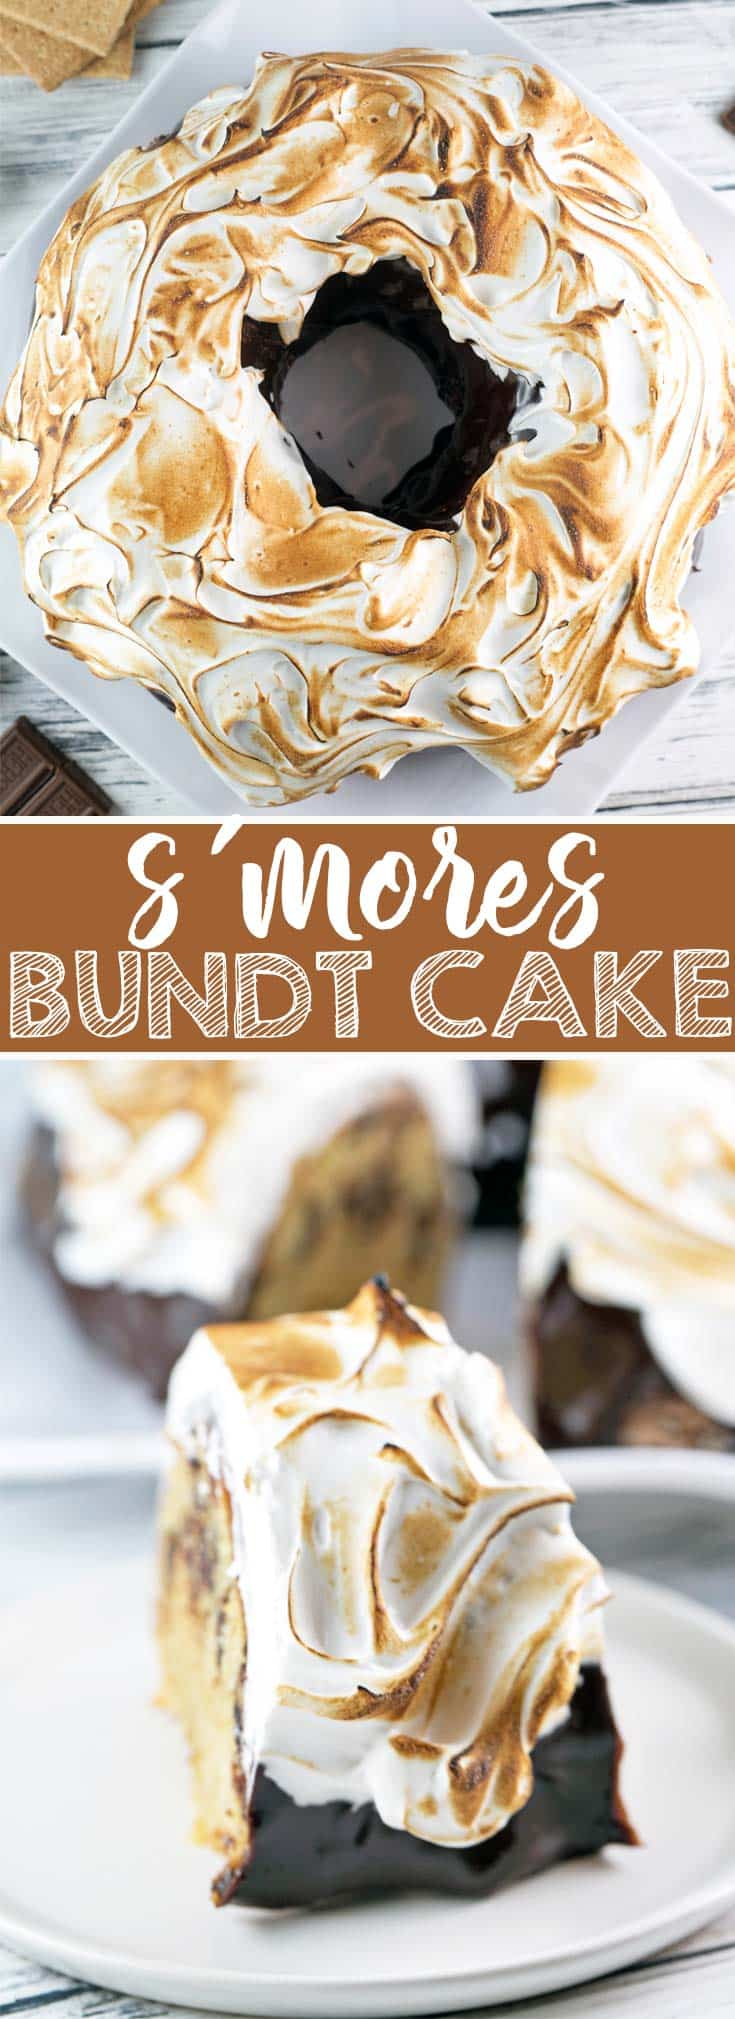 S'mores Bundt Cake: a graham cracker cake with chocolate ganache and homemade marshmallow fluff frosting toasted to a perfect brown. It's just like your childhood favorite - but even better! {Bunsen Burner Bakery}